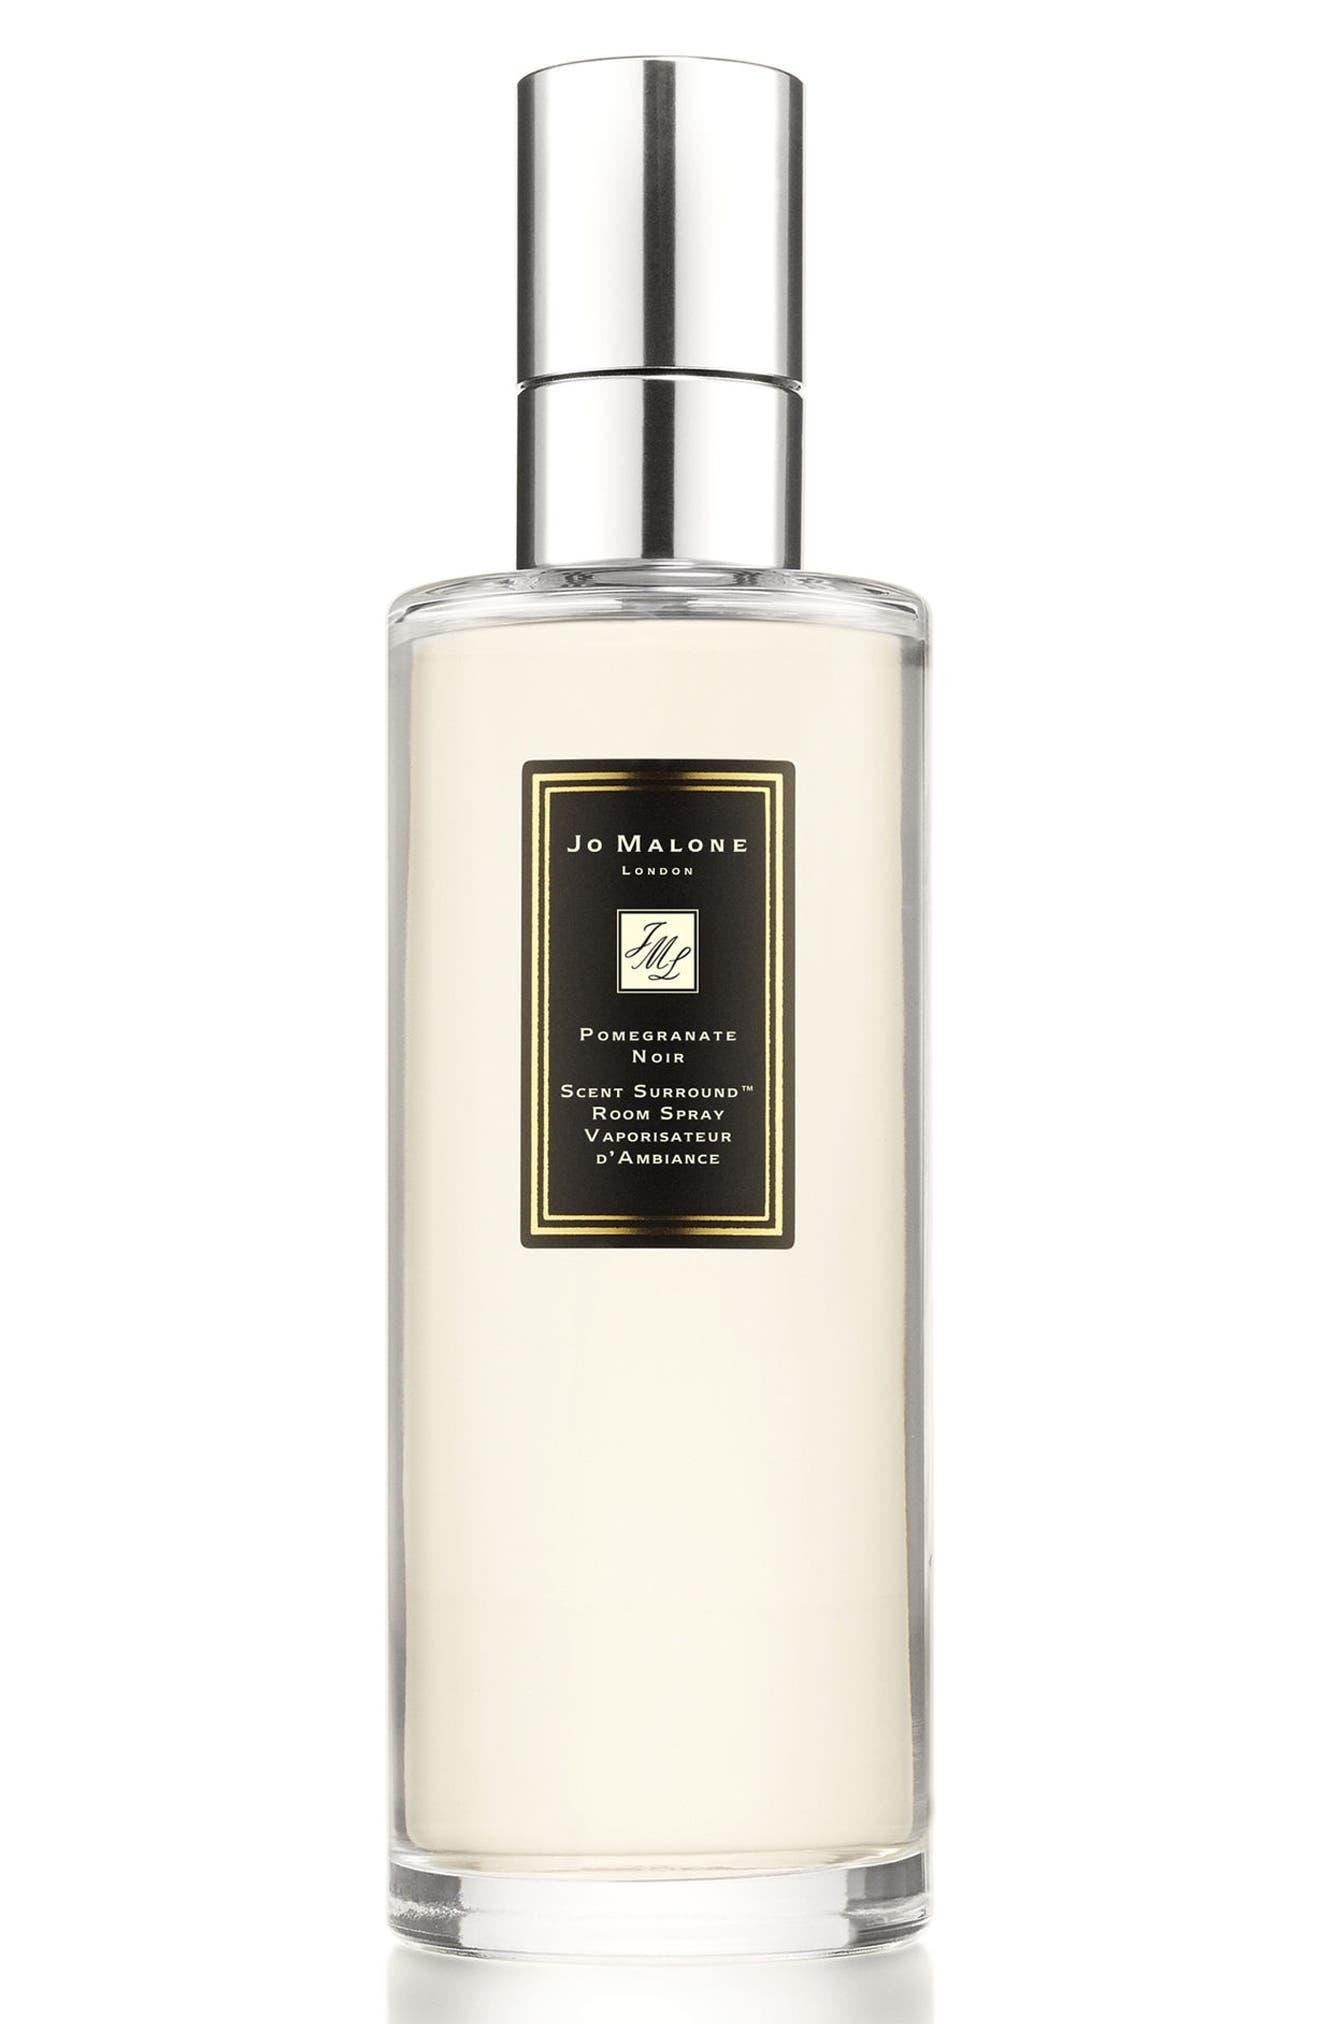 Jo Malone™ Pomegranate Noir Scent Surround™ Room Spray